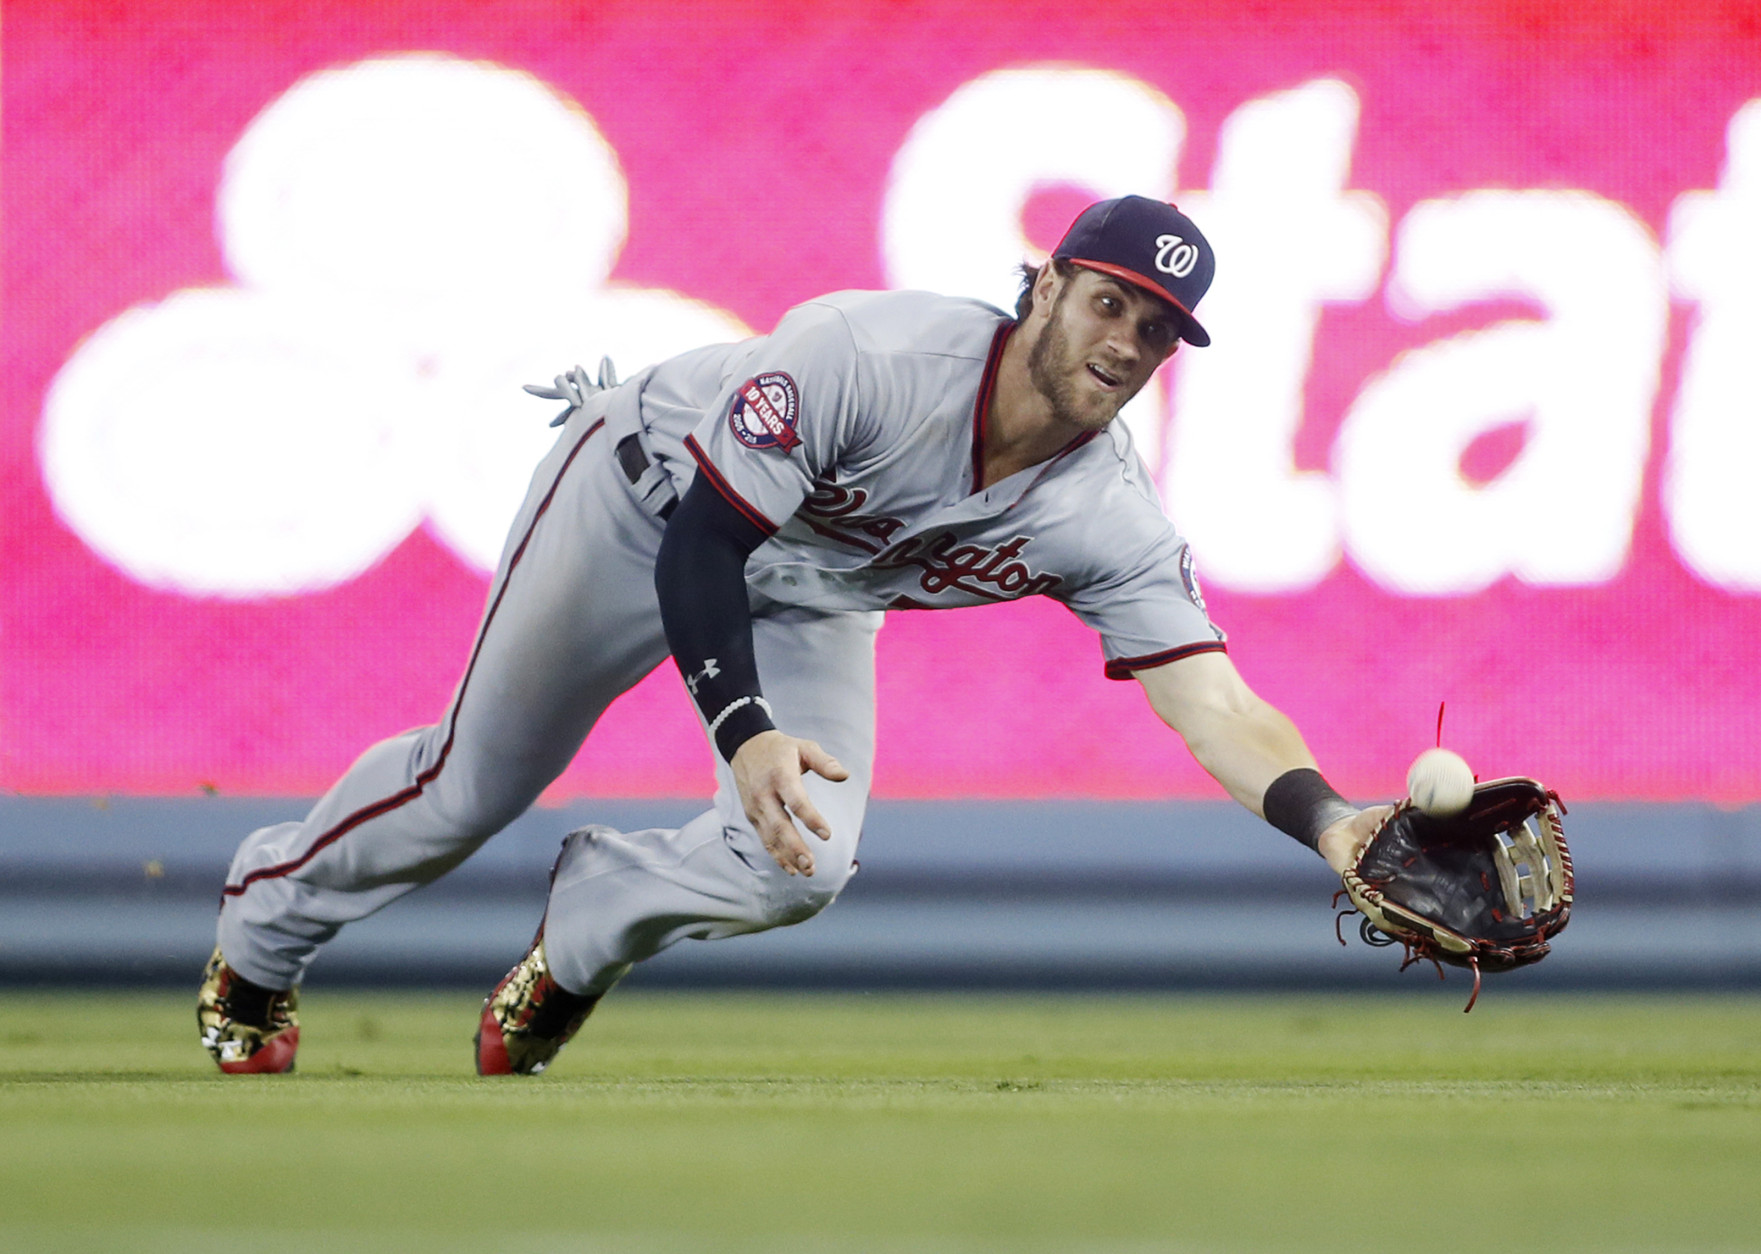 Bryce Harper made a great tumbling catch in cleats he wore ...